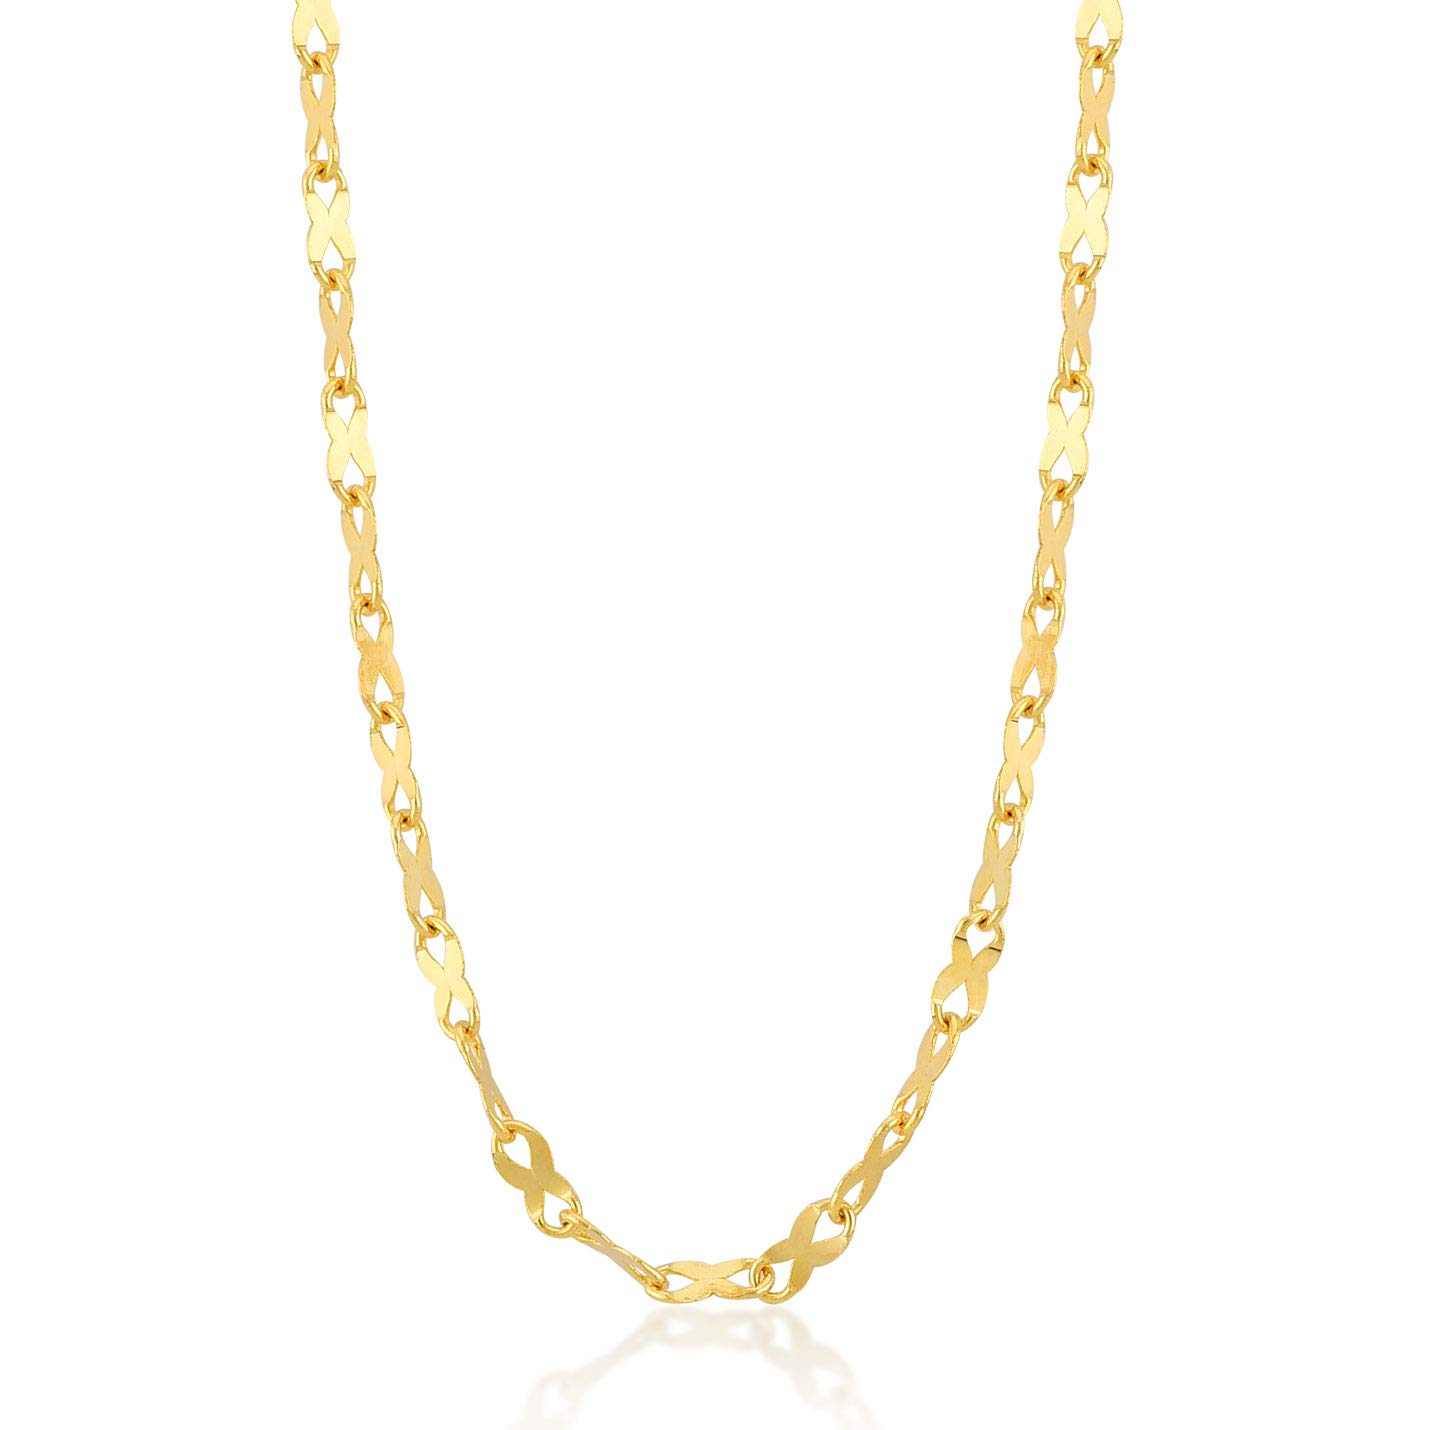 14k Real Gold 2.0 mm Flat Link Mirror Chain Necklace for Women and Men - with Gold Certificate and Lovely Box, 18 inch Gelin Diamond GLN100334